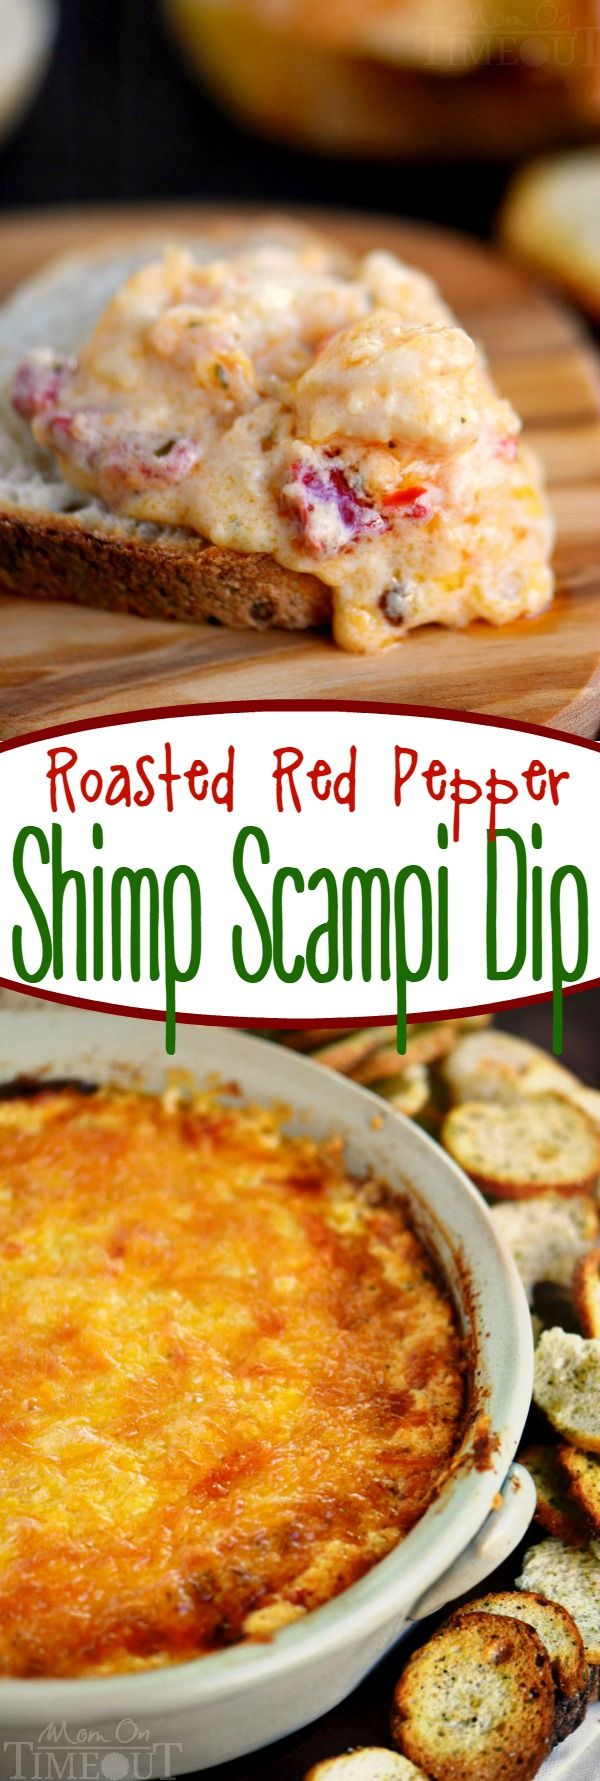 This Roasted Red Pepper Shrimp Scampi Dip is the perfect addition to your game day menu!